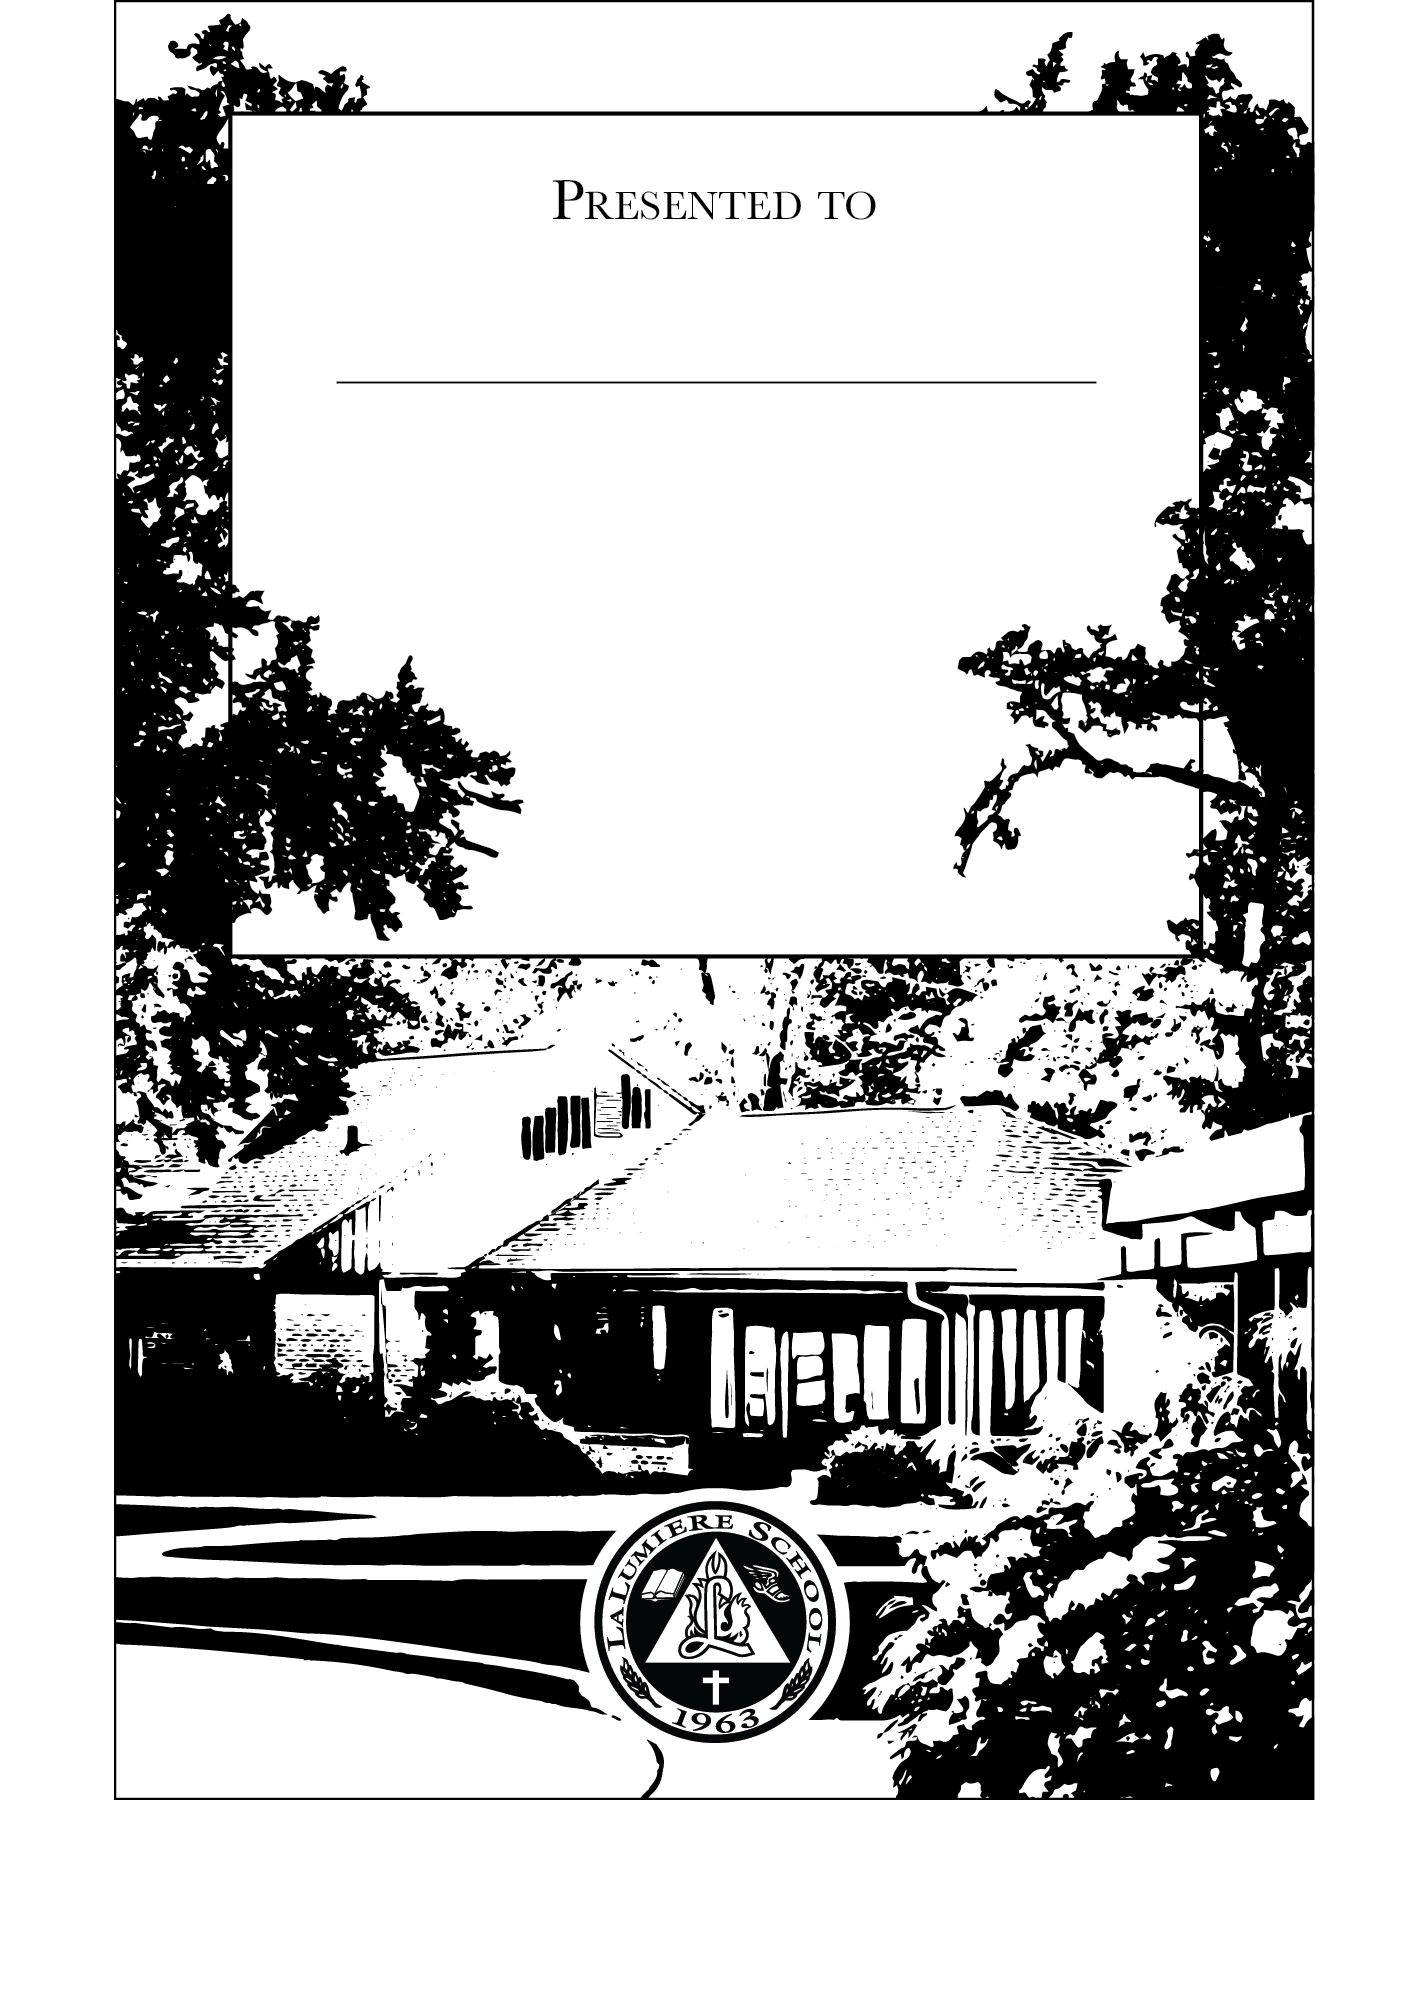 The La Lumiere bookplate features the Moore House, an iconic and historic school building, as its main subject.